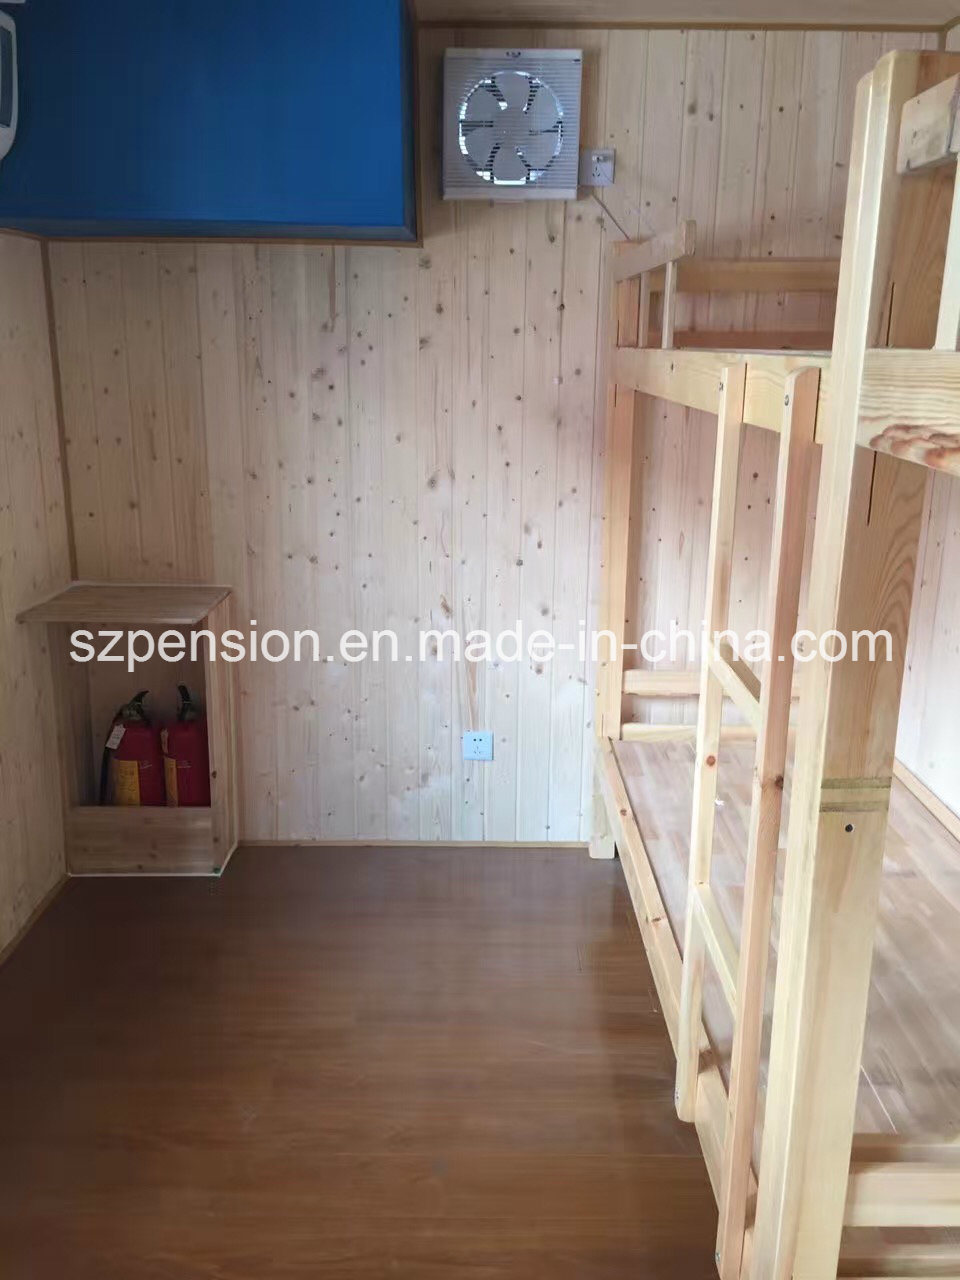 Newest Modular Modern Modified Container Prefabricated/Prefab Sunshine Room/House